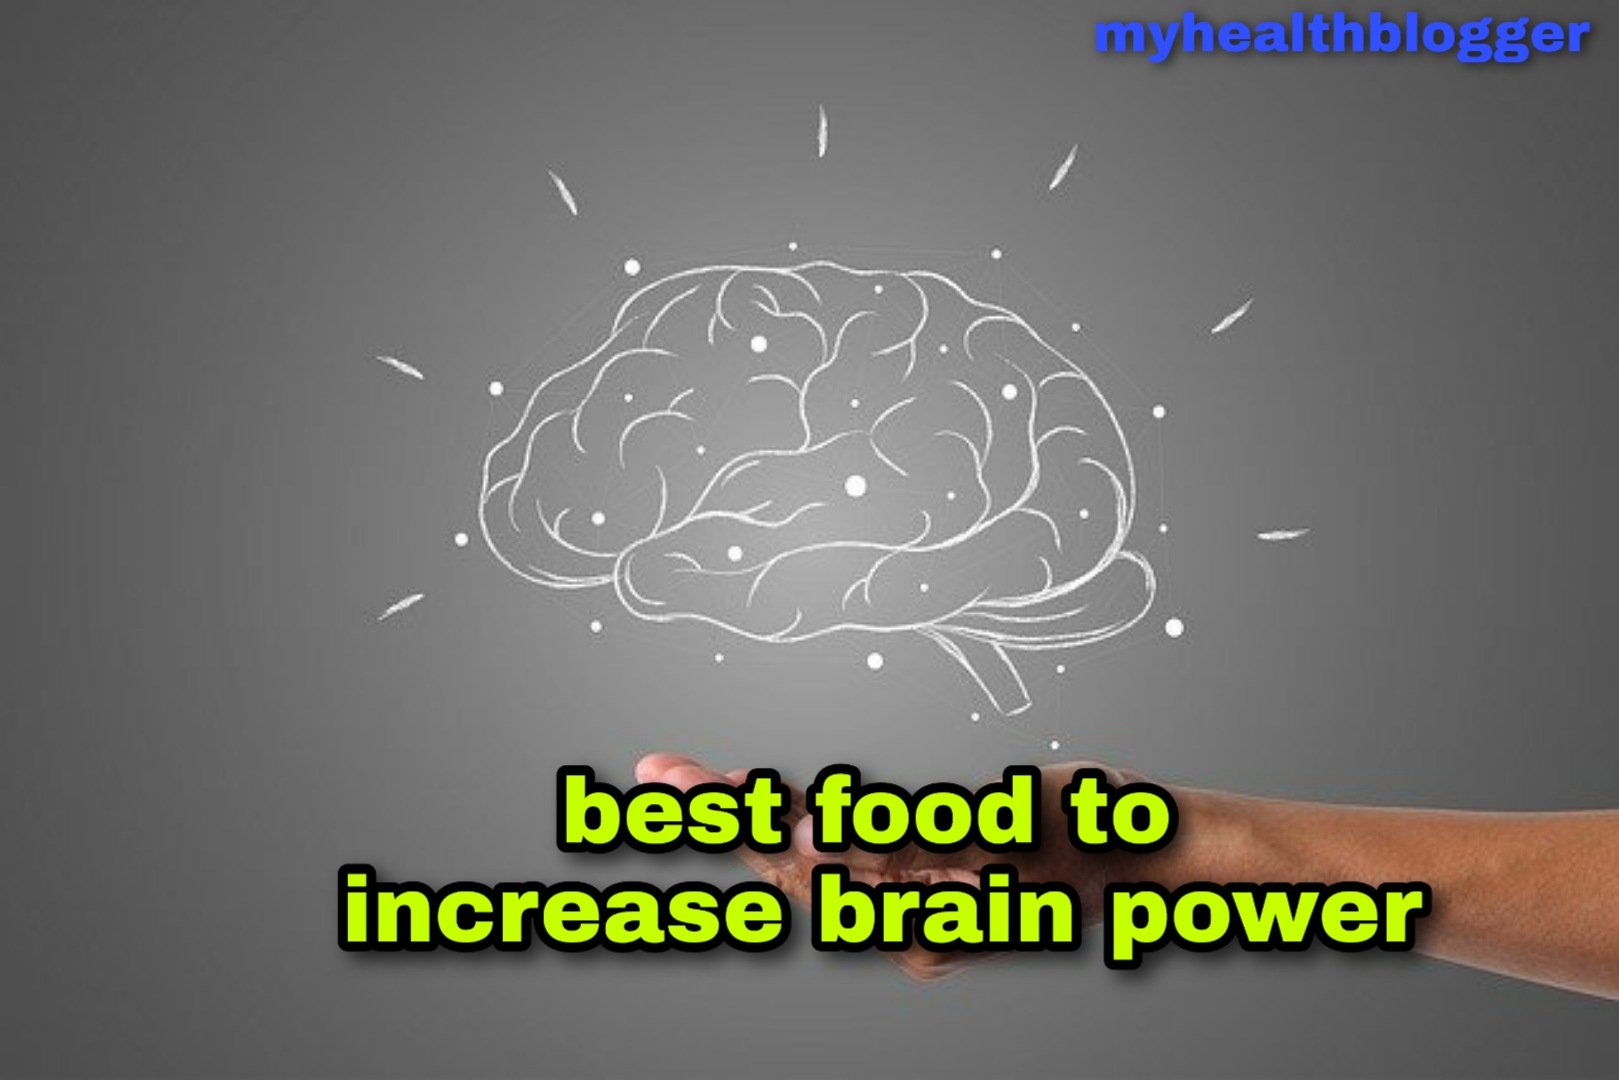 Best food for increase brainpower